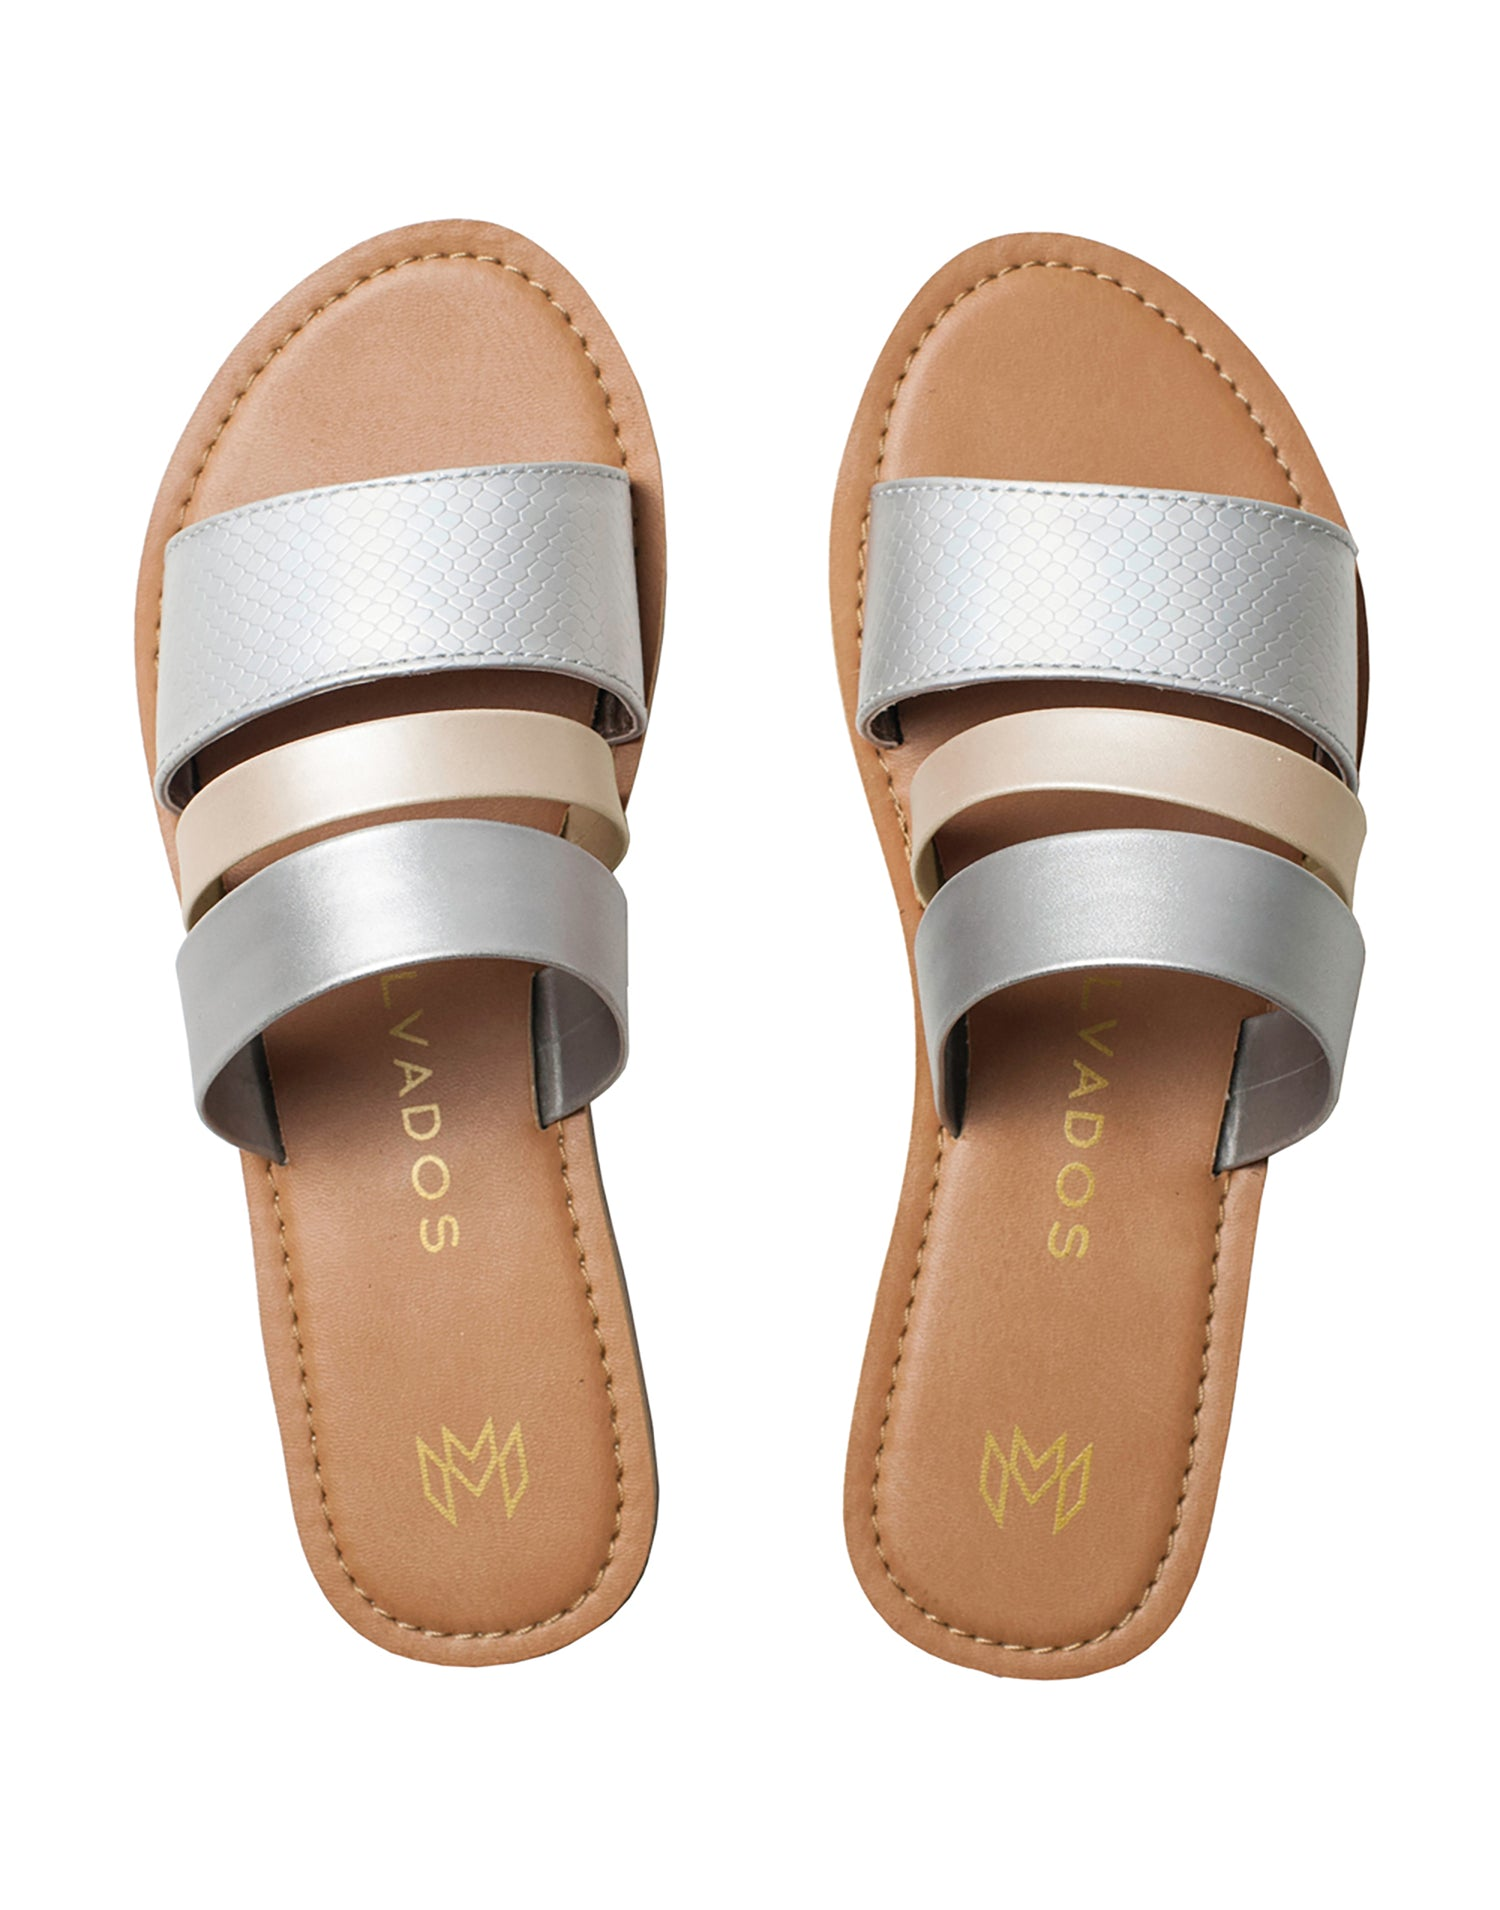 Malvados Icon Adele Sandals in Grey/Gold - product view